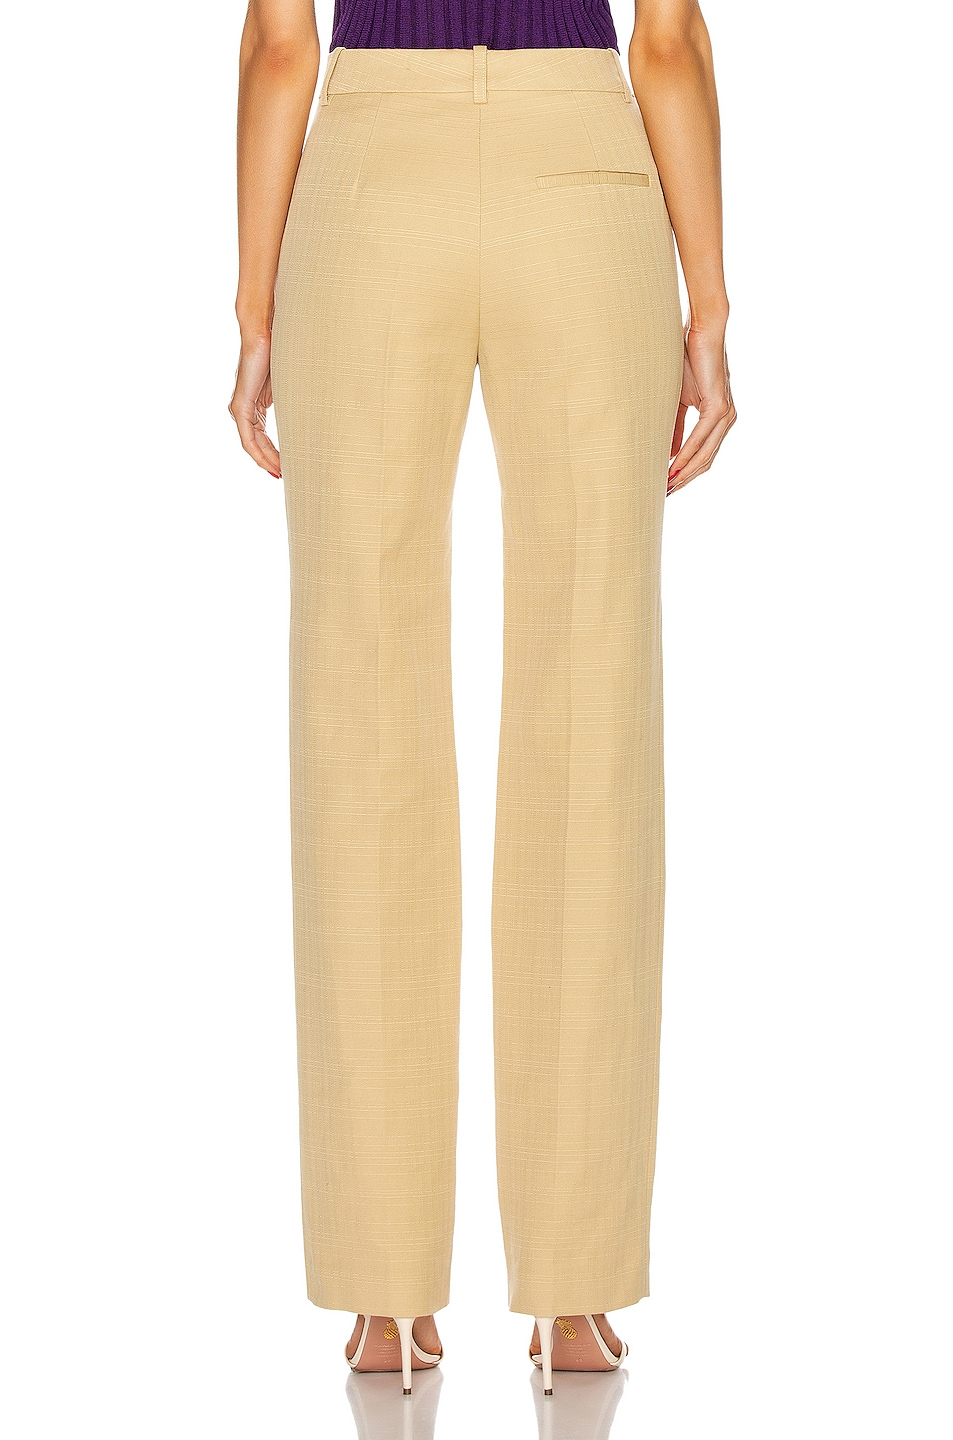 Image 3 of Victoria Beckham High Waisted Slim Leg Trouser in Sand